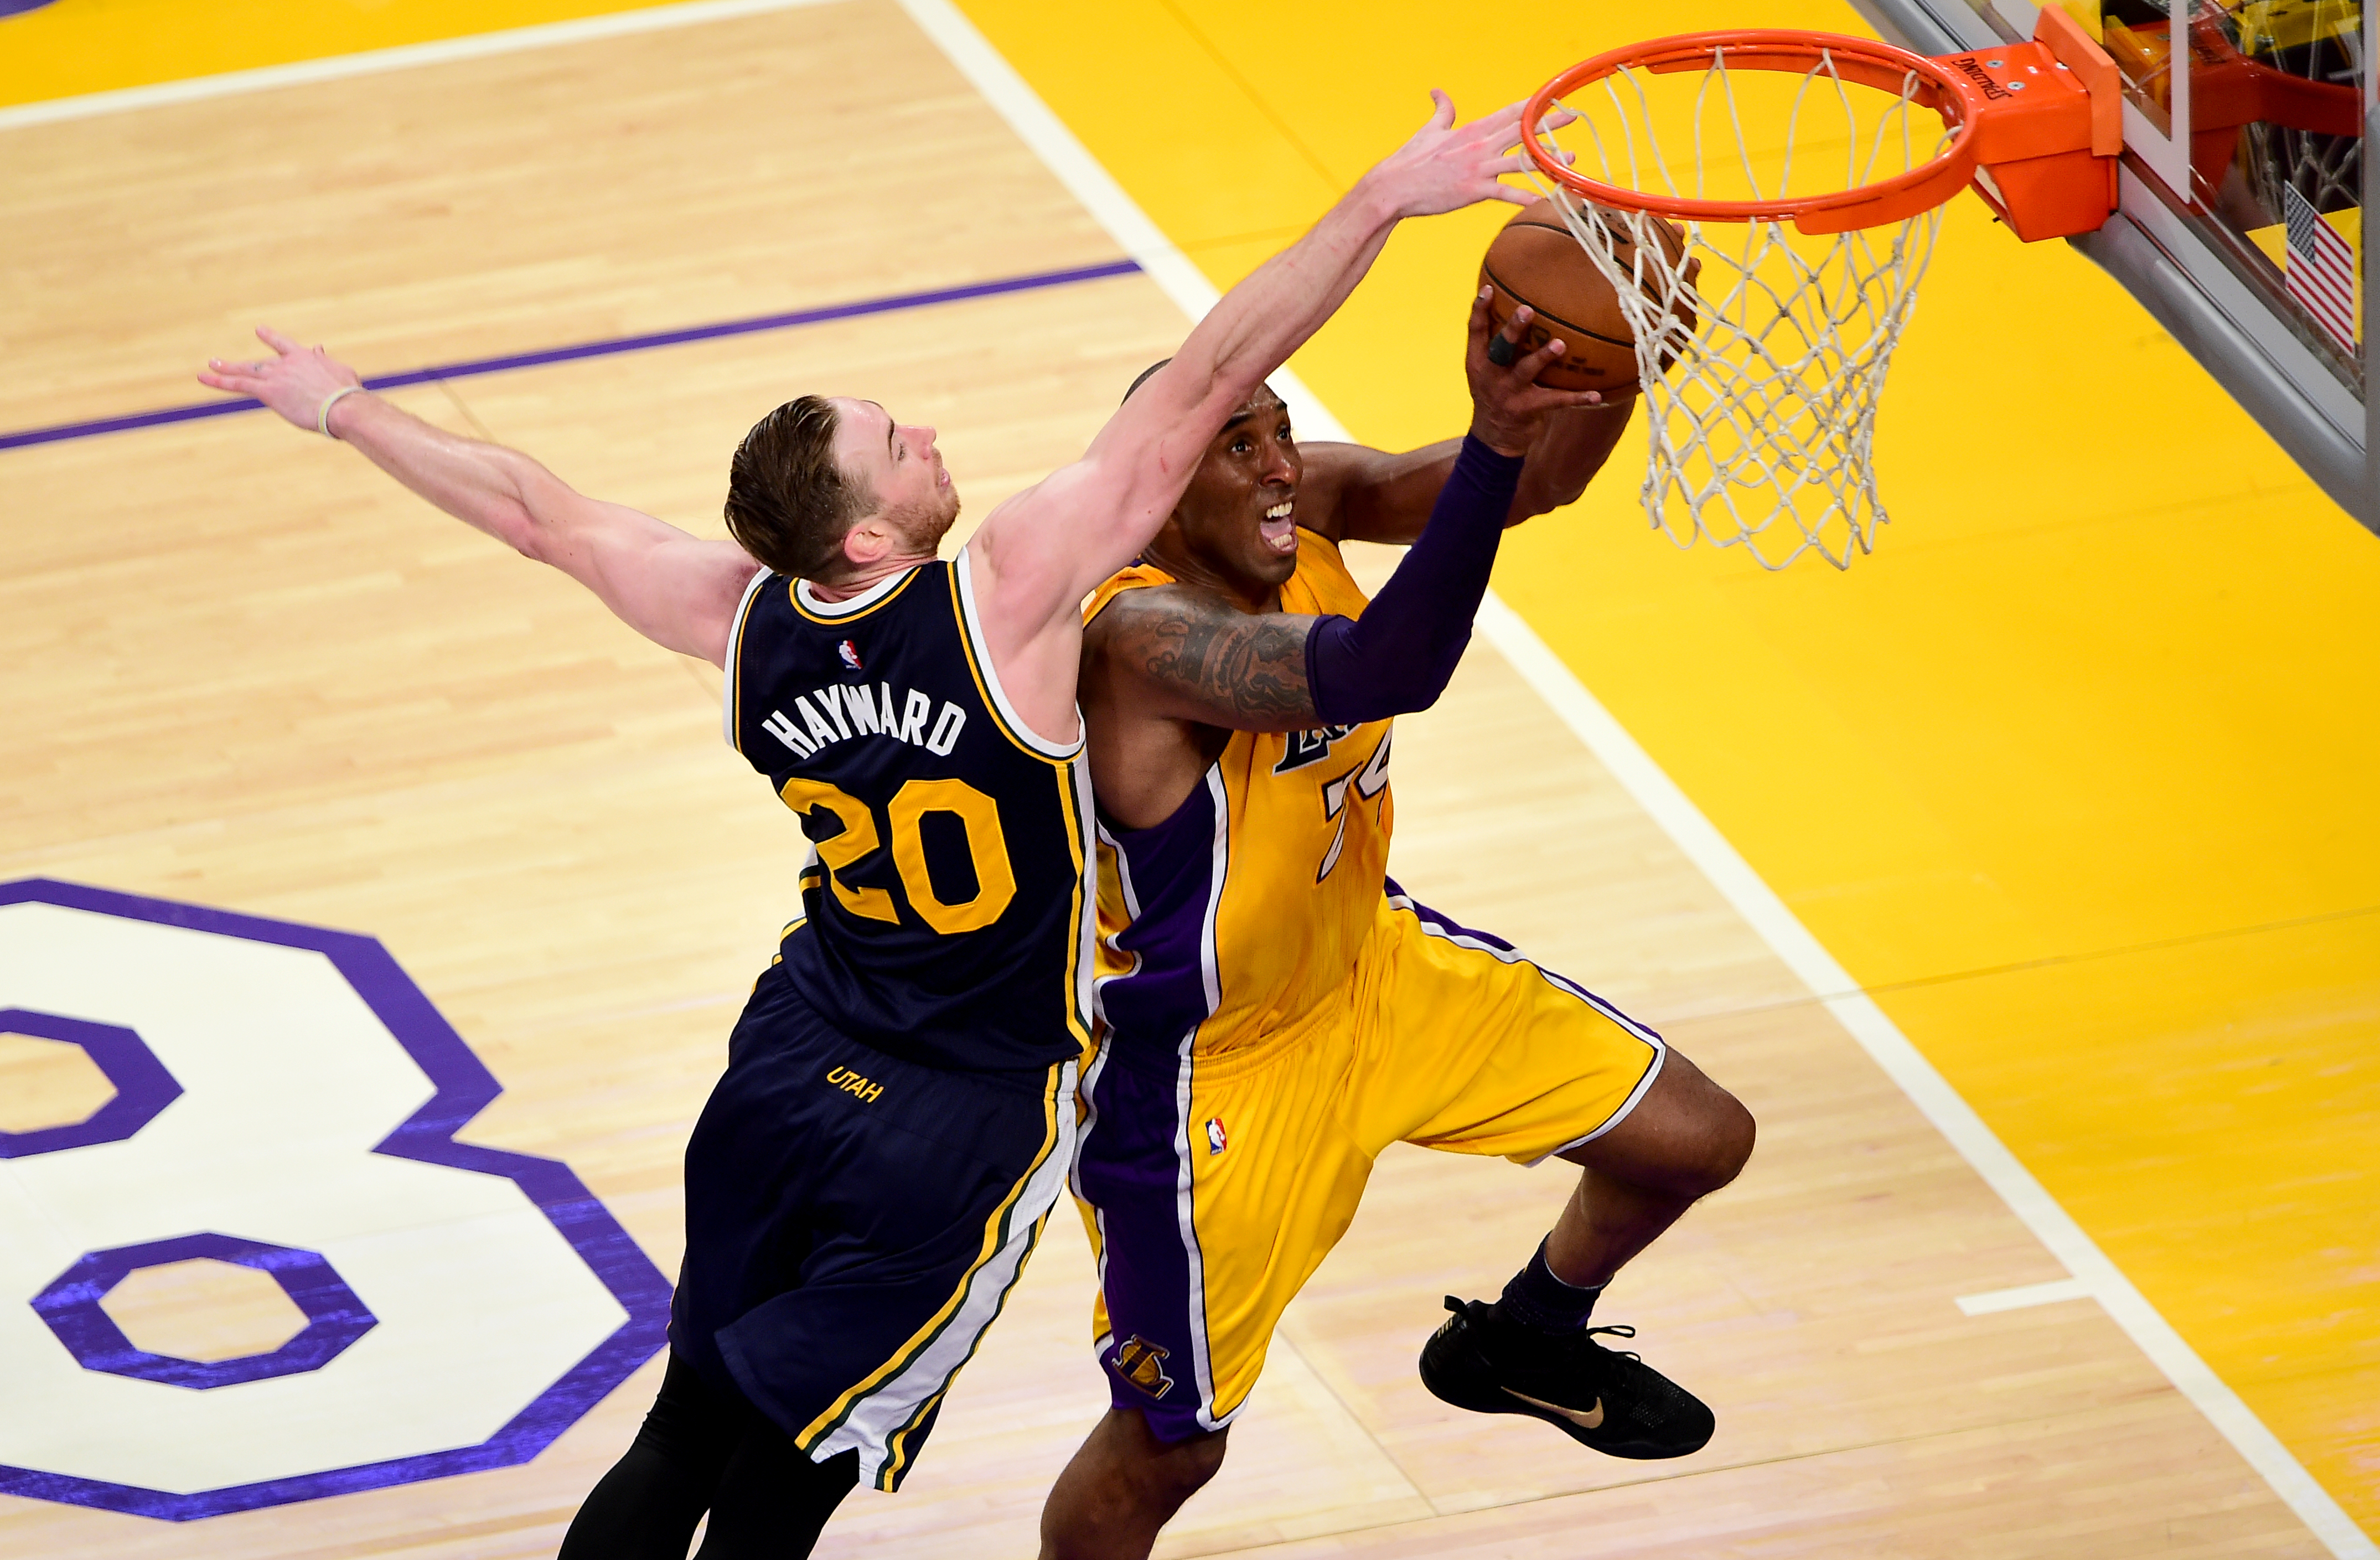 Kobe Bryant (R) of the Los Angeles Lakers goes to the hoop under pressure from Gordon Hayward of the Utah Jazz in Bryant's last game as a Laker during their season-ending NBA western division matchup in Los Angeles, California on April 13, 2016, where the Lakers defeated the Jazz 101-96. / AFP PHOTO / FREDERIC J. BROWN